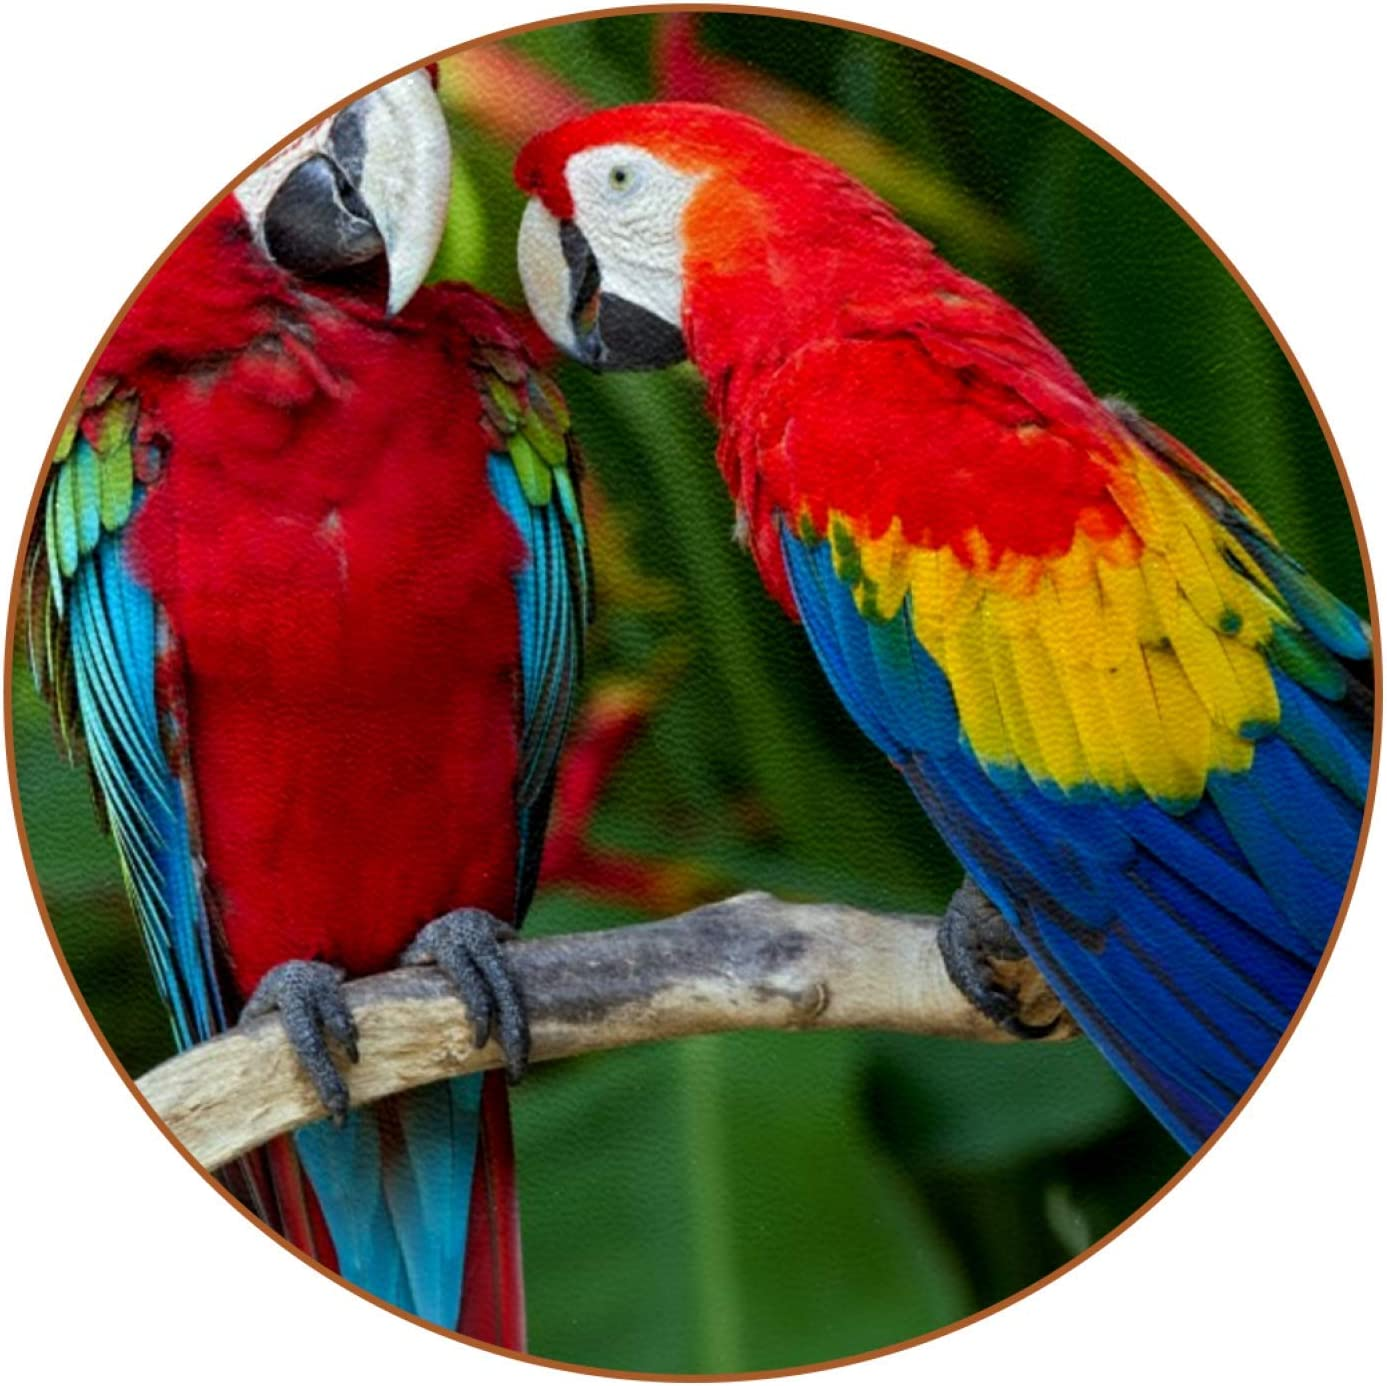 LORVIES Scarlet Macaw Parrots Tropical Birds Leather Coasters Round Coffee Mug Glass Cup Placemats Cup Mats Place Mats 6 PCS